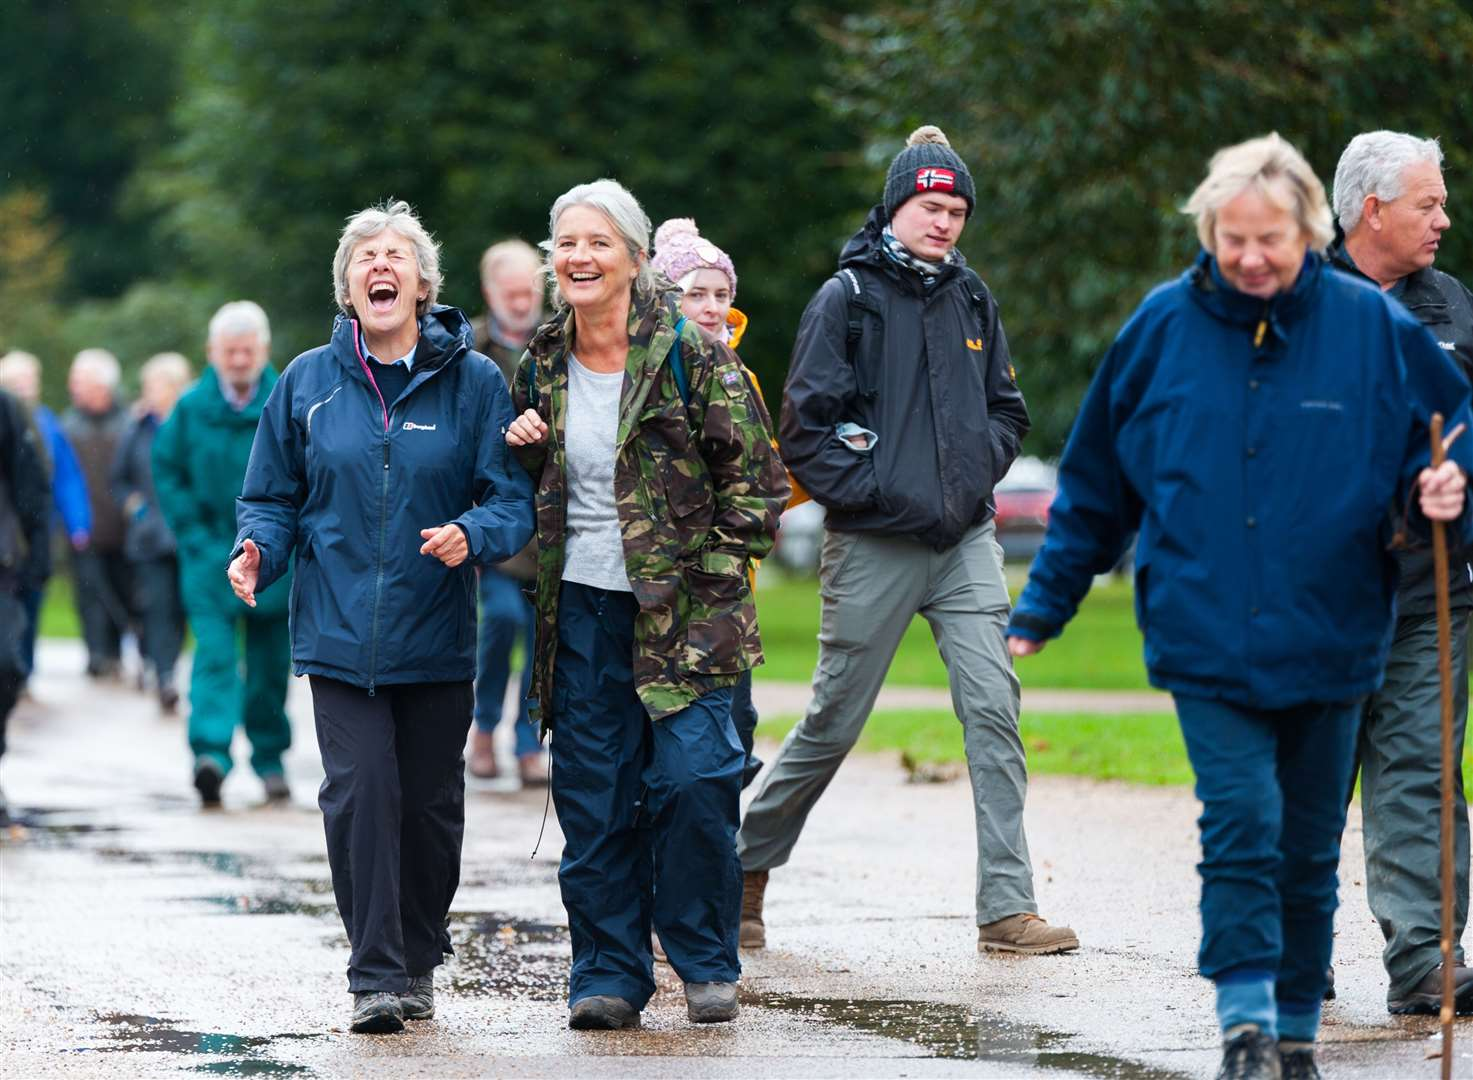 Smiles a plenty as plenty of walkers take part in the fundraiser at Holkham Hall. Pictures: Ian Burt